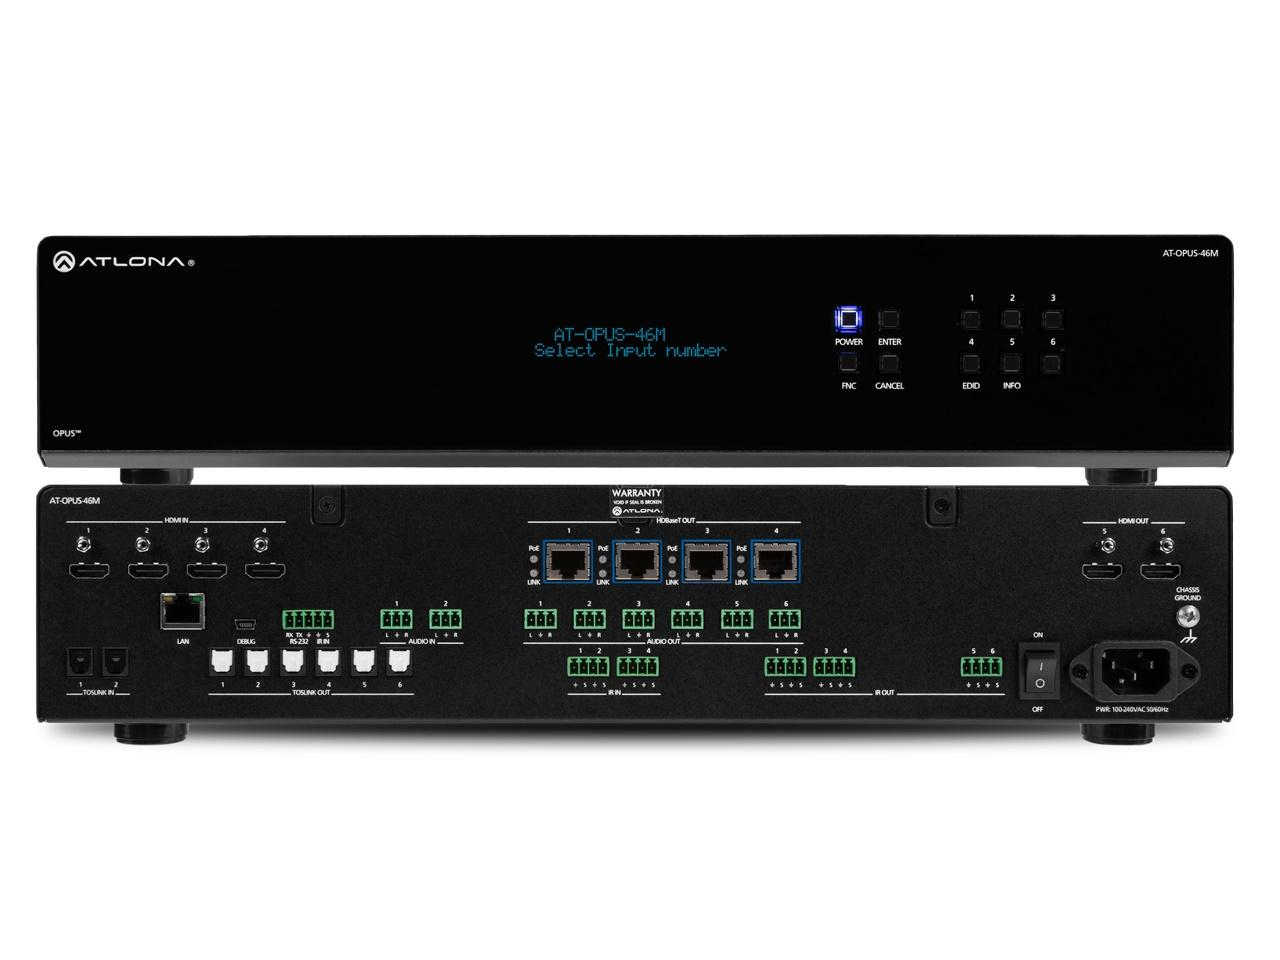 Atlona AT-OPUS-46M OPUS 4x6 4K HDR HDMI to HDBaseT Matrix Switcher